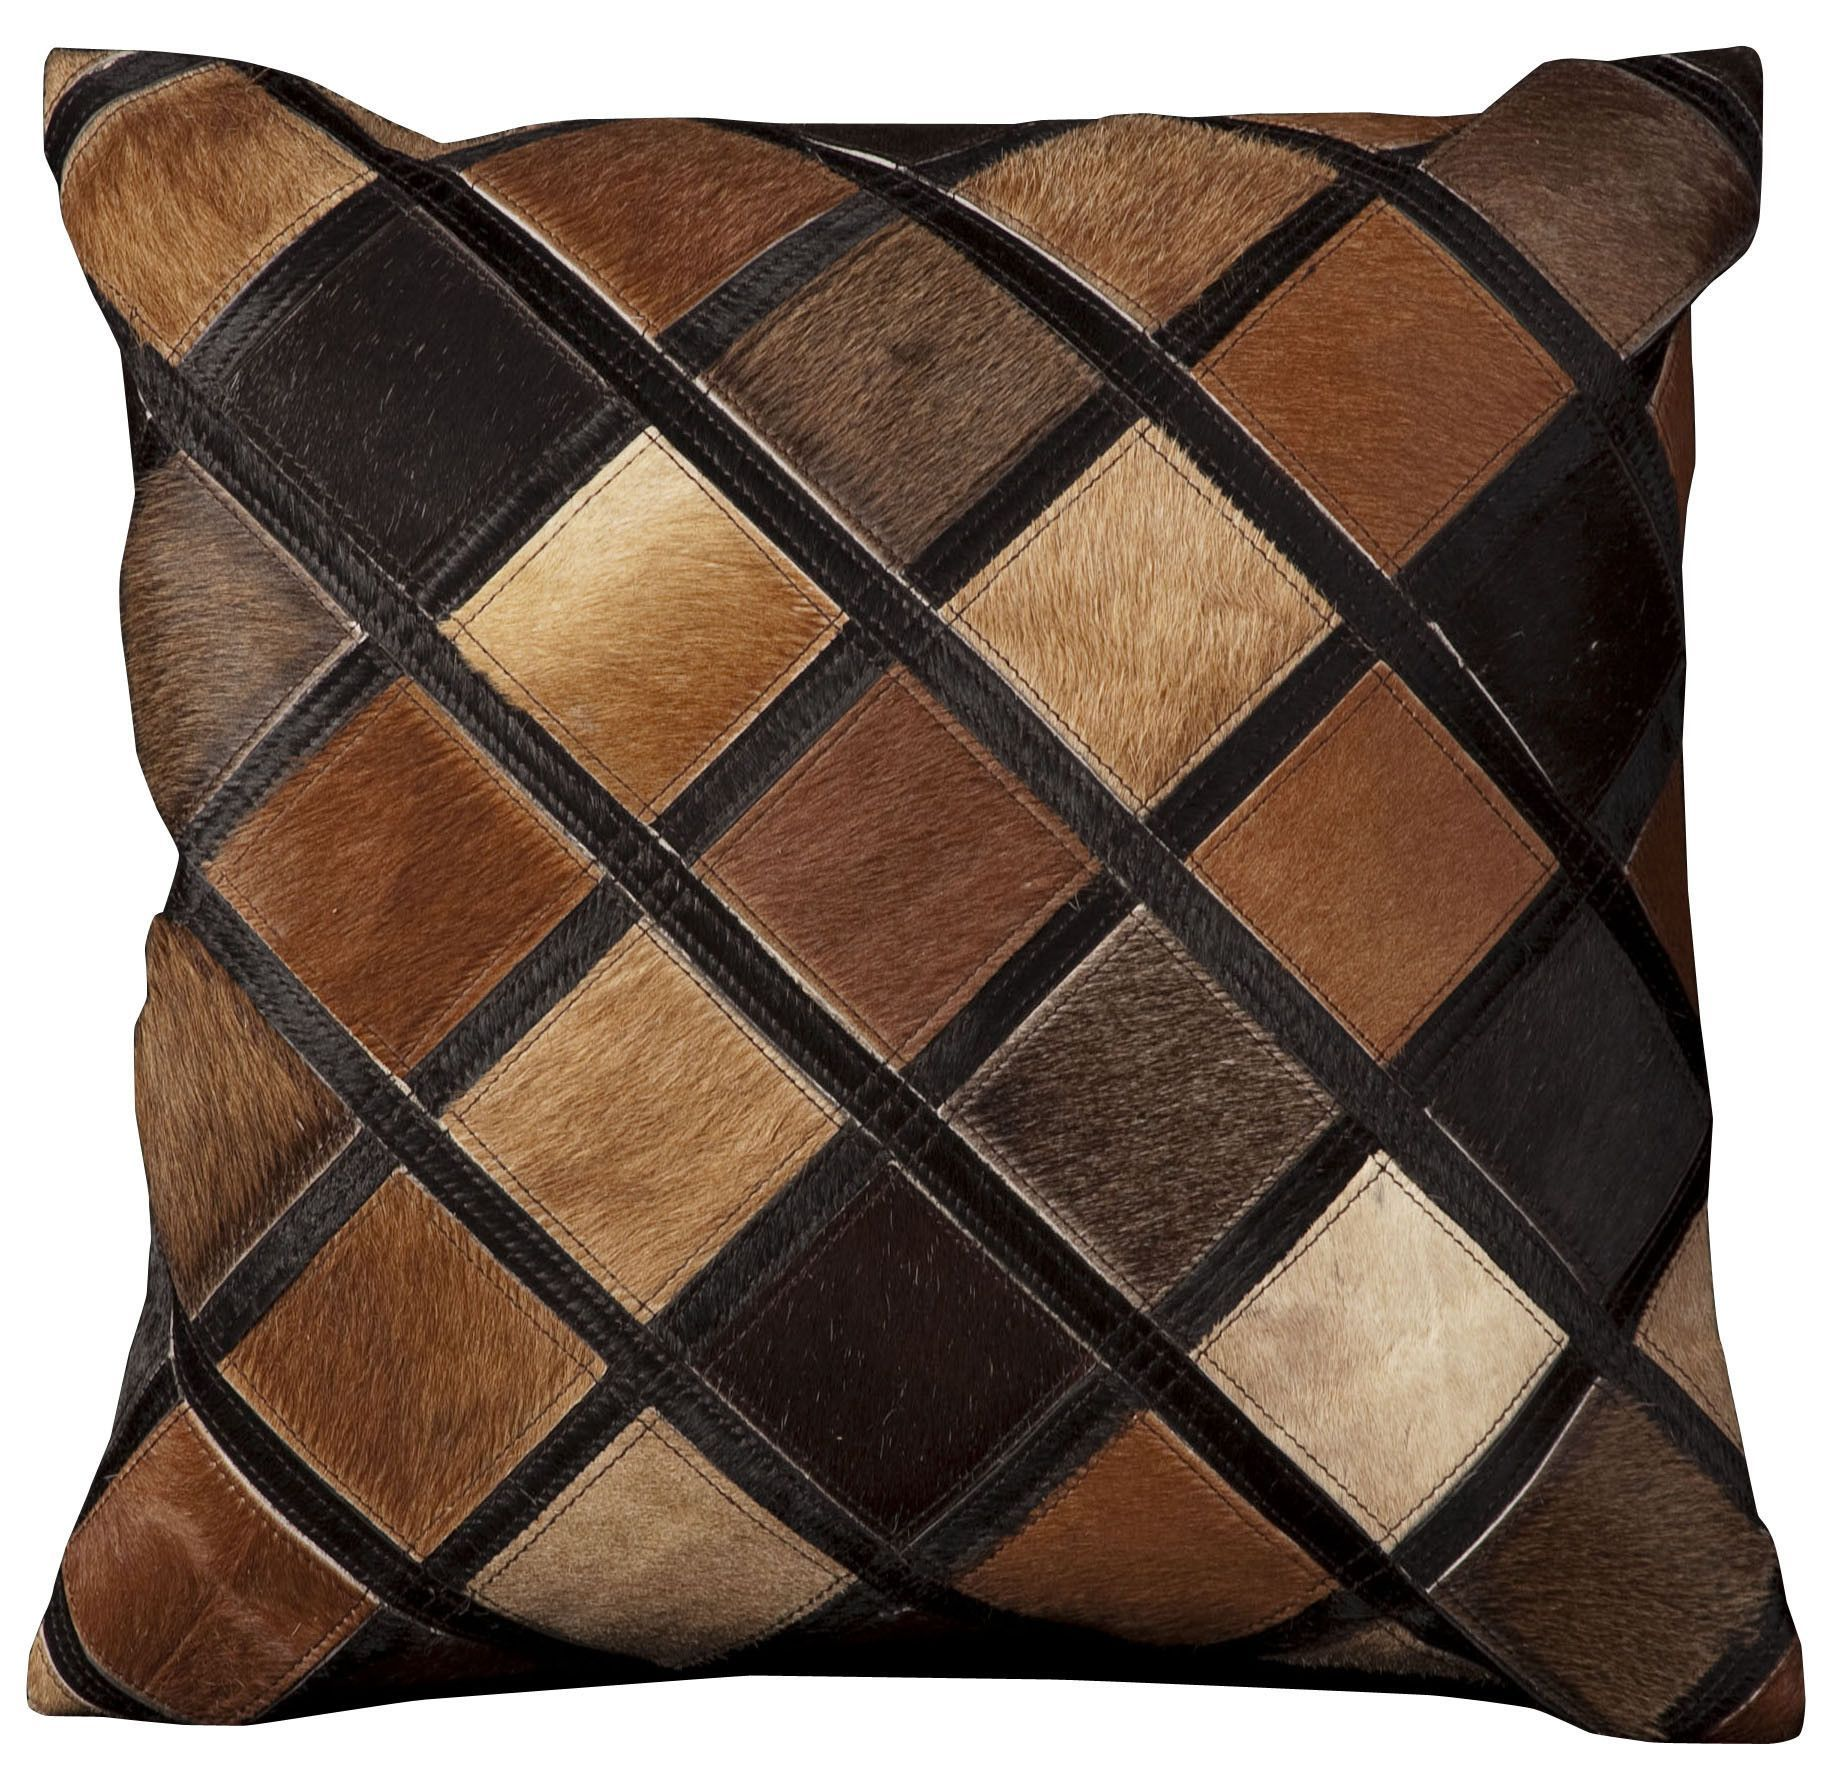 Cowhide Sofa Throws Walmart Frozen Flip Open Natural Leather And Hide Diamonds Hair On